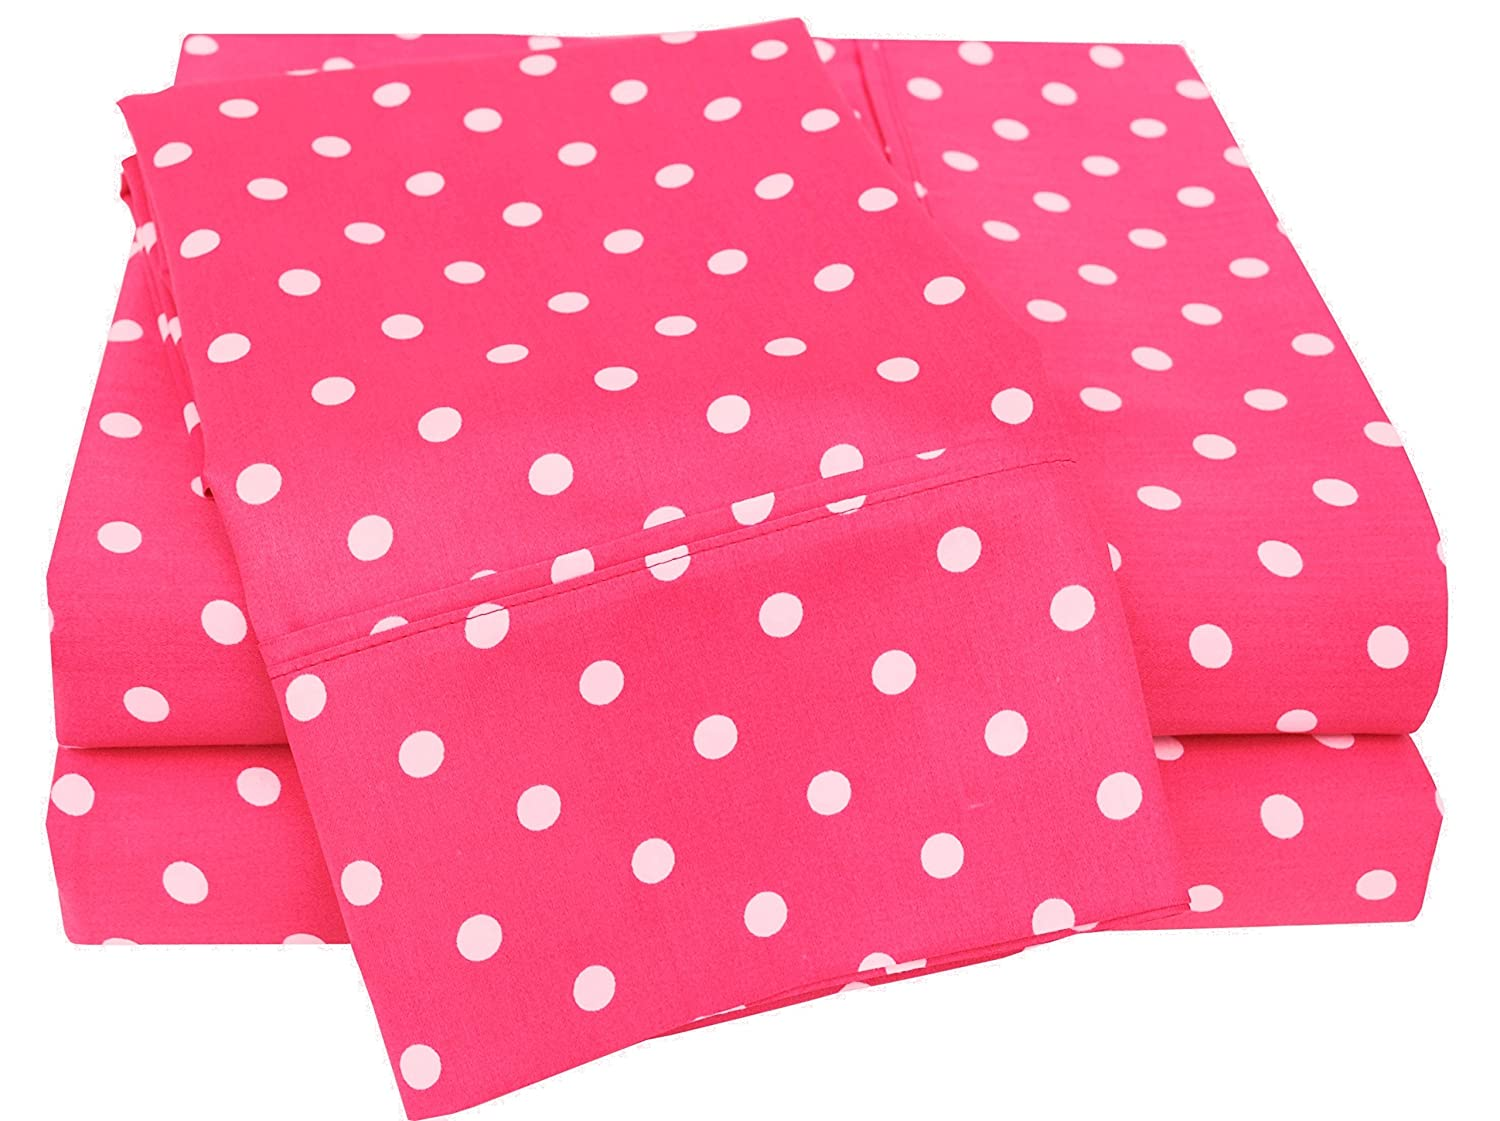 Pink Twin Superior Polka Dot Sheet Set, 600 Thread Count Cotton Blend Bedding Sets, Soft and Wrinkle Resistant Sheets with Deep Fitting Pockets - Queen, Grey